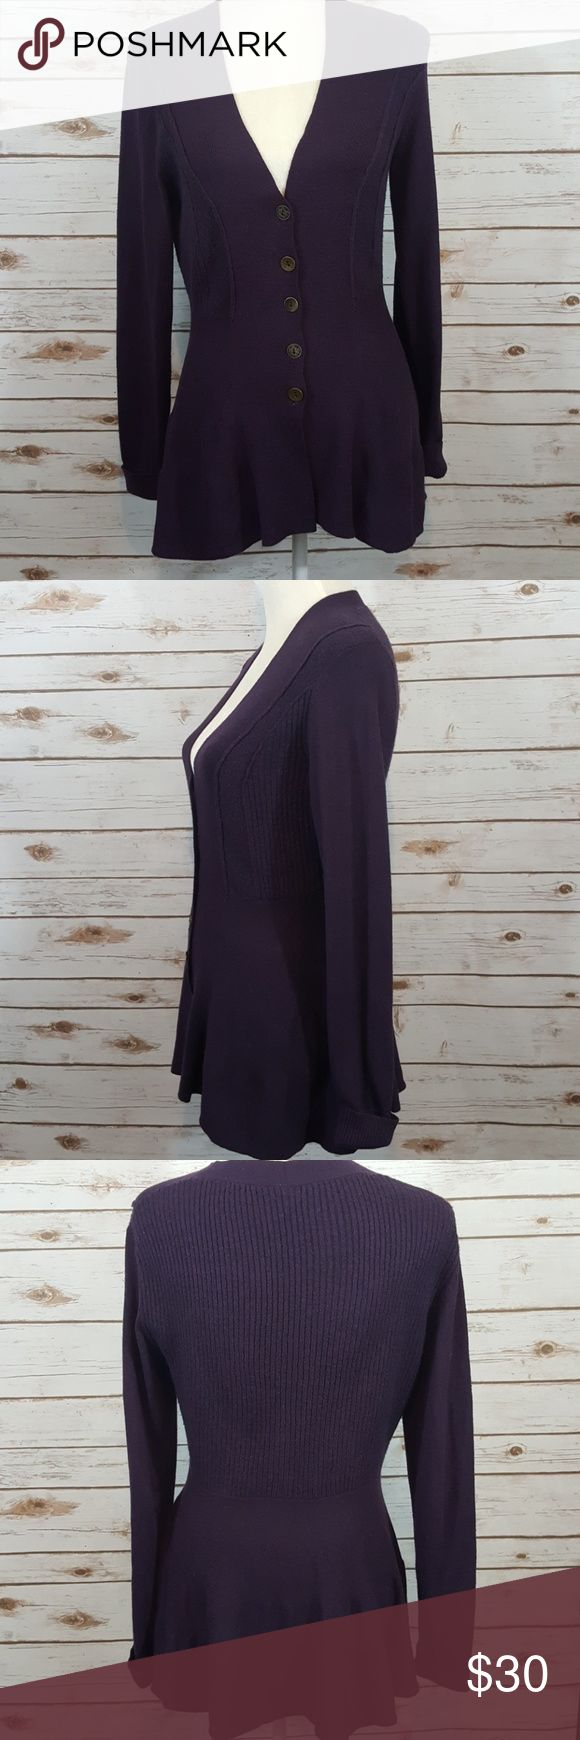 """Free people cardigan peplum hem sweater Free people cardigan sweater Beautiful eggplant color with button-front  58% cotton 22% nylon 8% wool 7% polyester 4% acrylic 1% spandex  Size tag has been cut out it is a extra small/small - please refer to measurements Flat lay armpit to armpit measures 17"""" Shoulder to hem measures 27 and 1/2 in Has peplum hem line and minimal wash wear Free People Sweaters"""